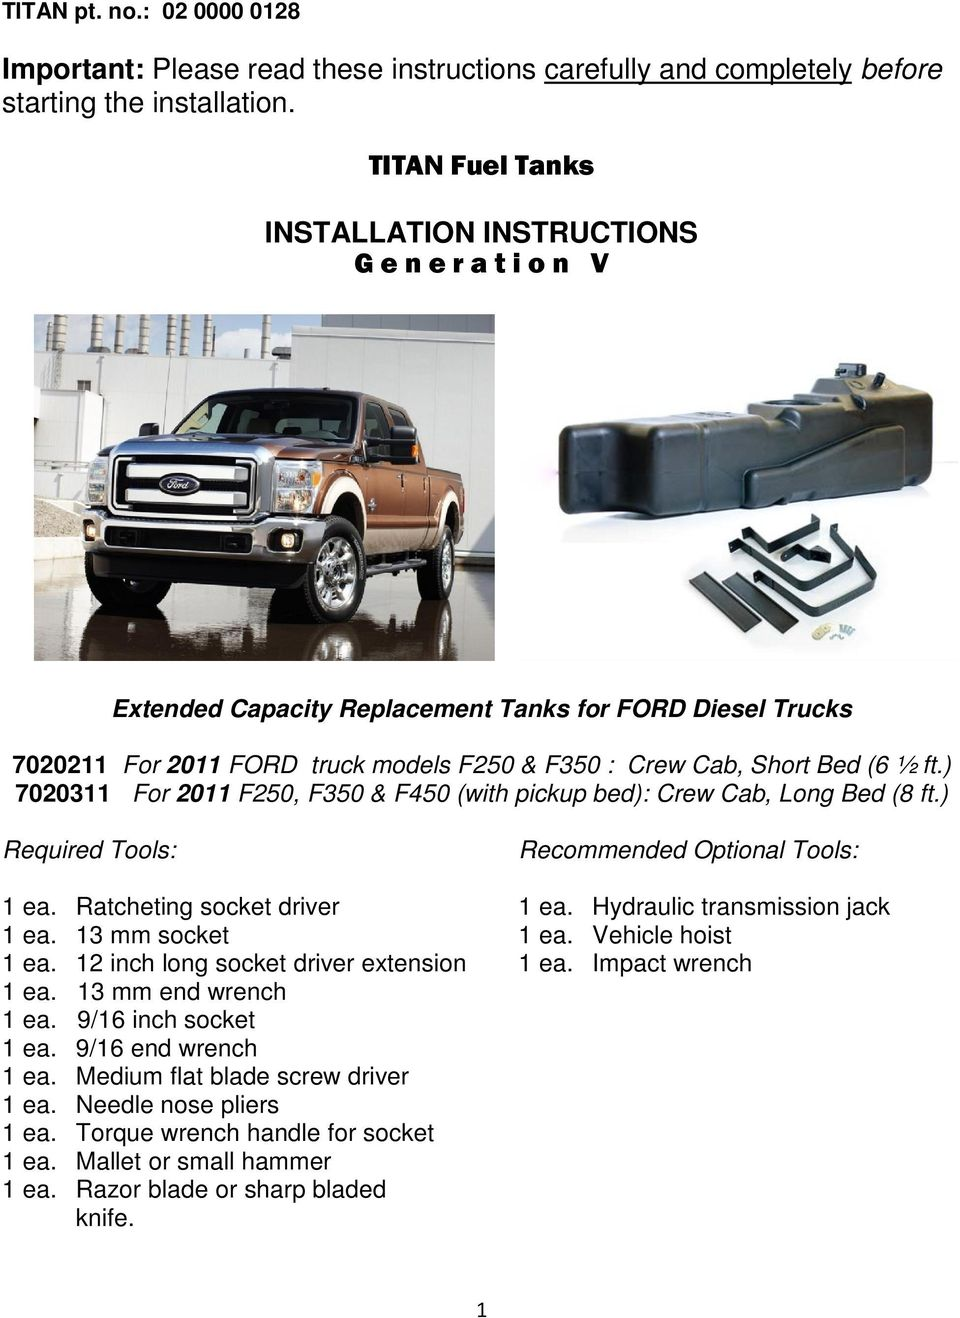 ft.) 7020311 For 2011 F250, F350 & F450 (with pickup bed): Crew Cab, Long Bed (8 ft.) Required Tools: Recommended Optional Tools: 1 ea. Ratcheting socket driver 1 ea. Hydraulic transmission jack 1 ea.